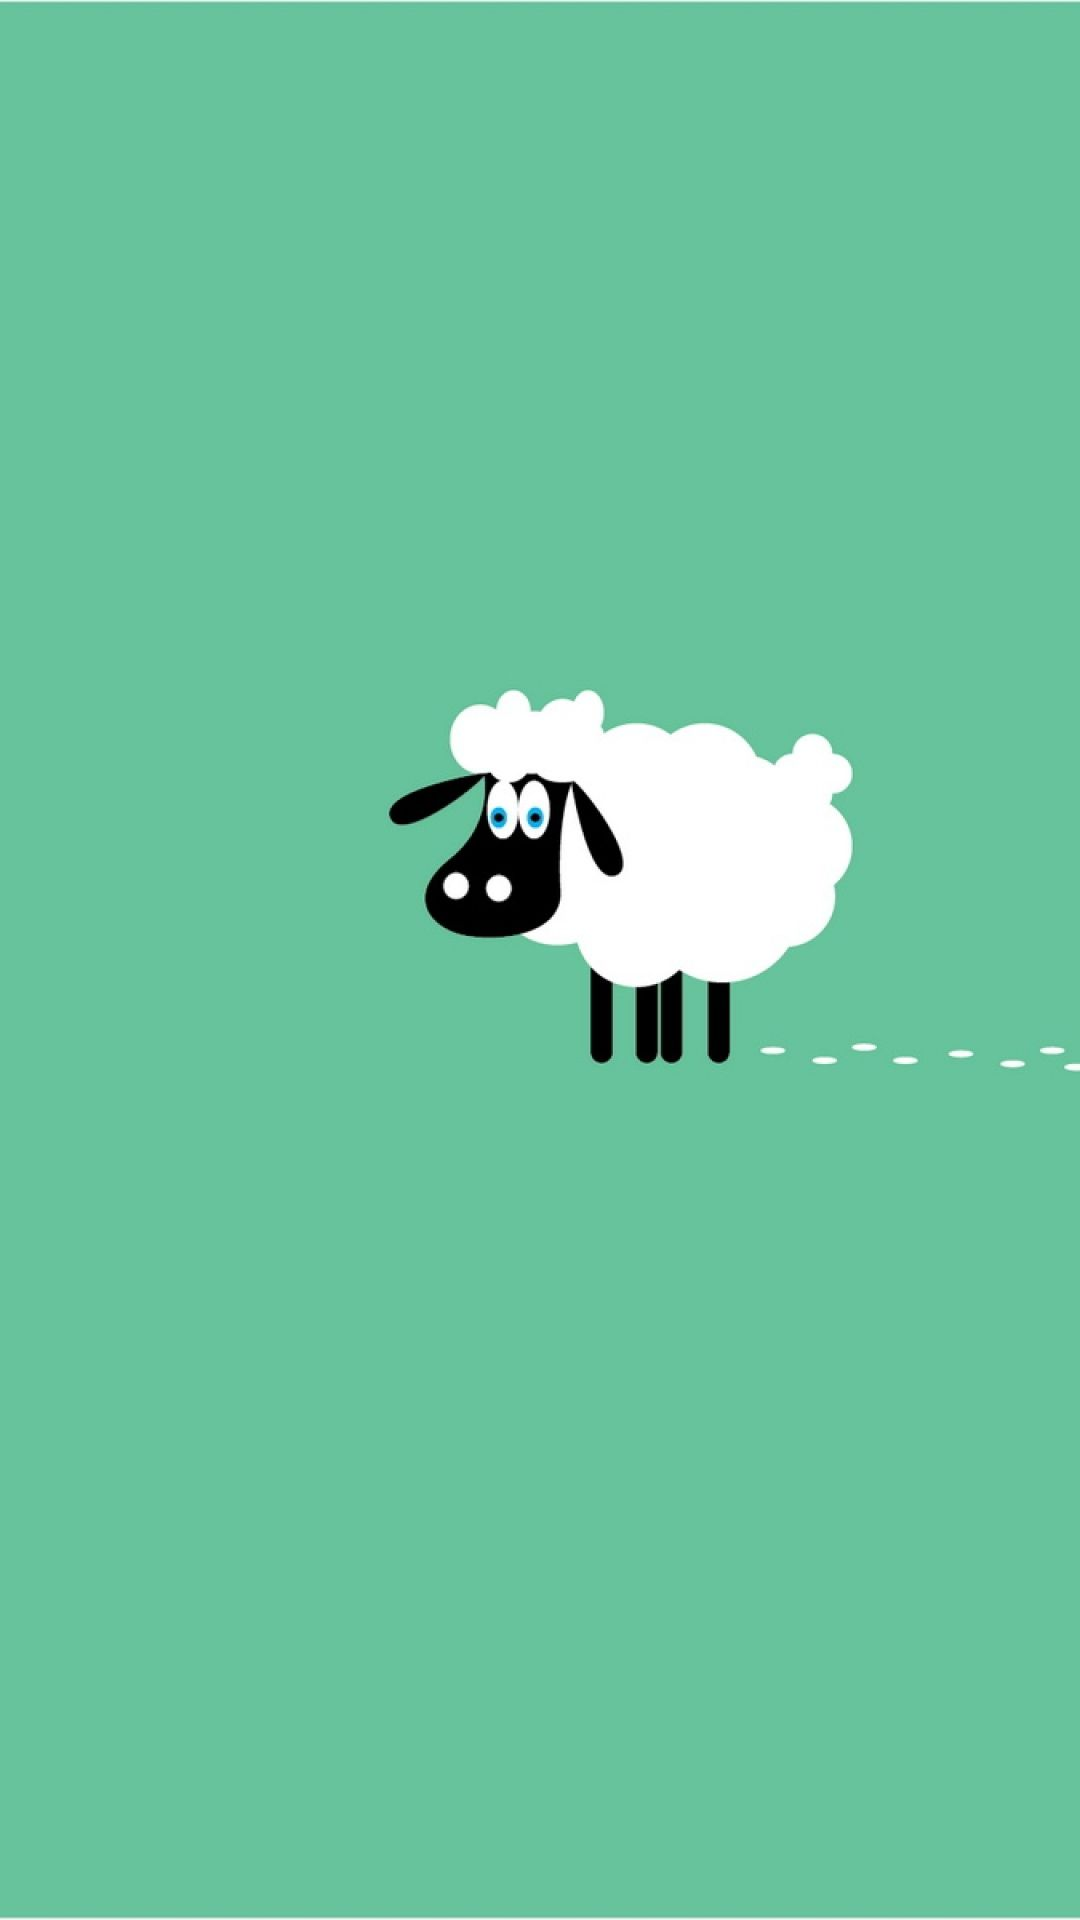 Sheep. 9 Animals Minimalistic Wallpapers for iPhone